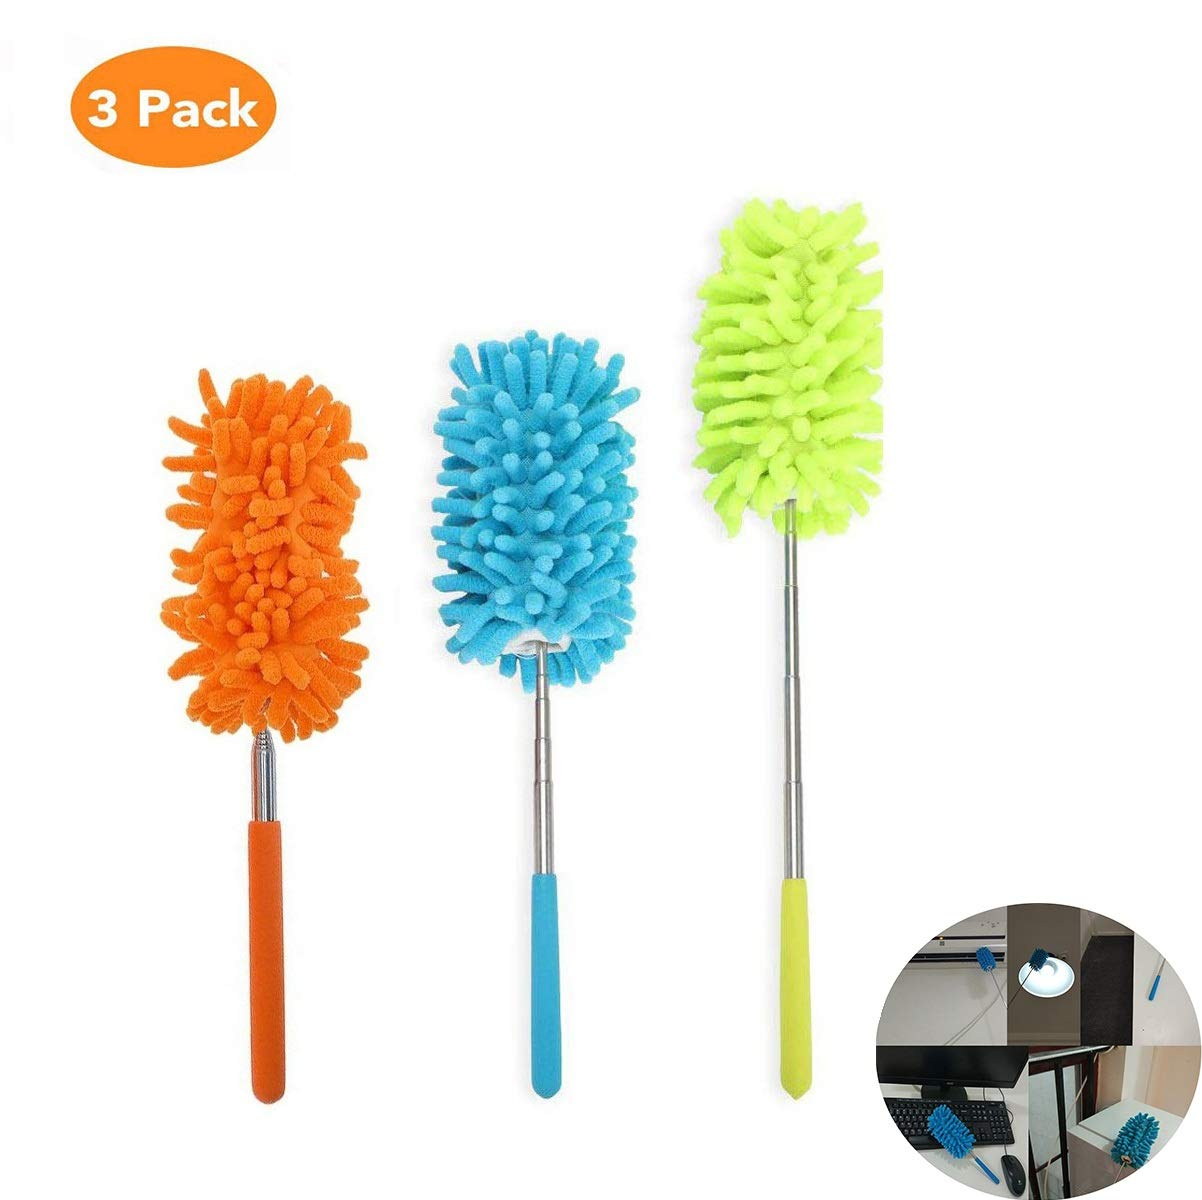 Microfiber Ztent Washable Extendable Cleaning